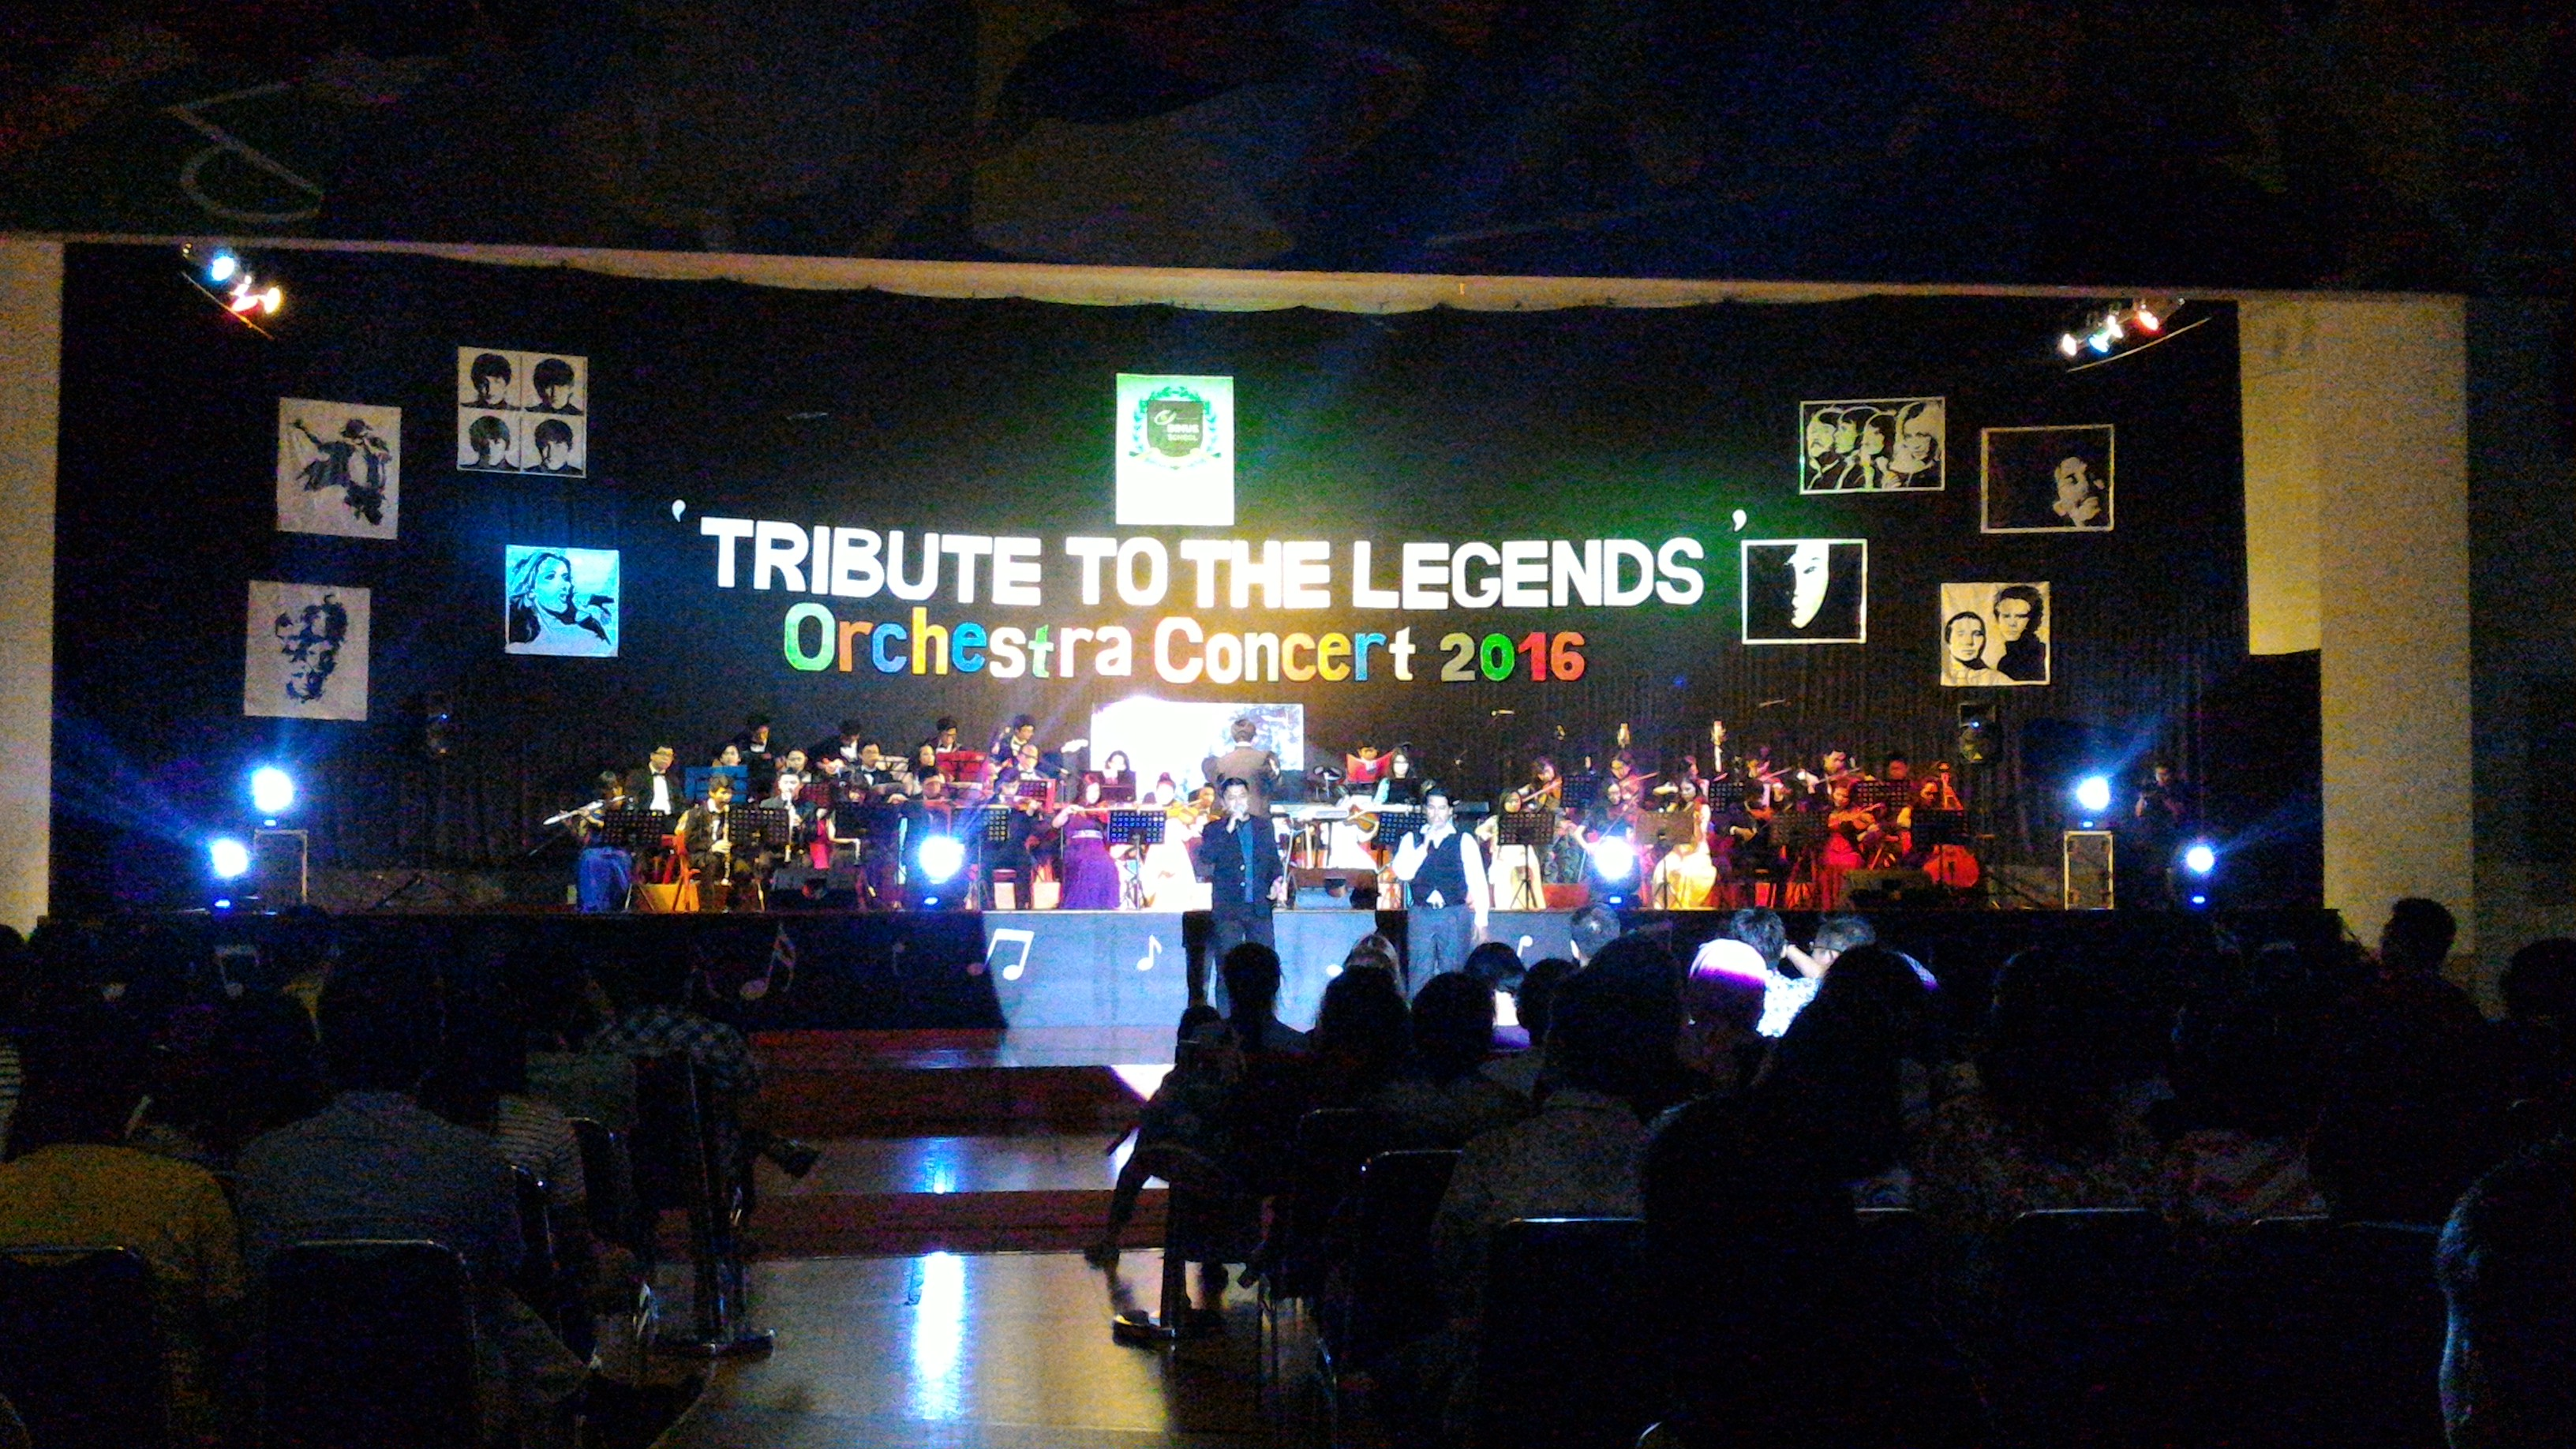 BINUS SCHOOL Serpong Orchestra Concert - Tribute to The Legends